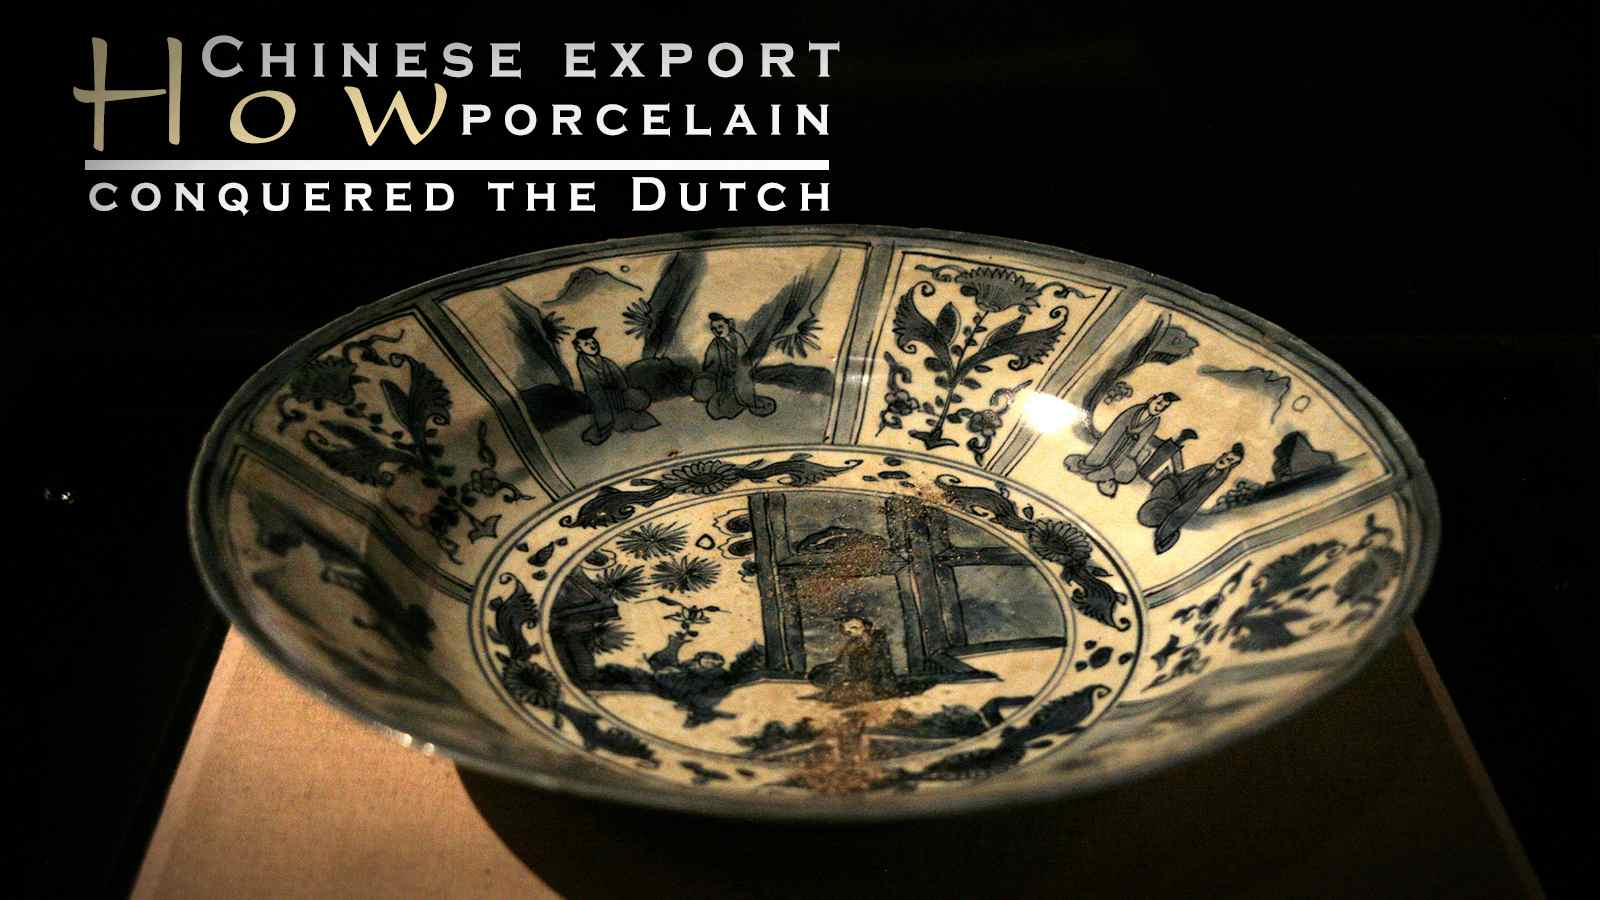 How Chinese export porcelain conquered the Dutch - CGTN